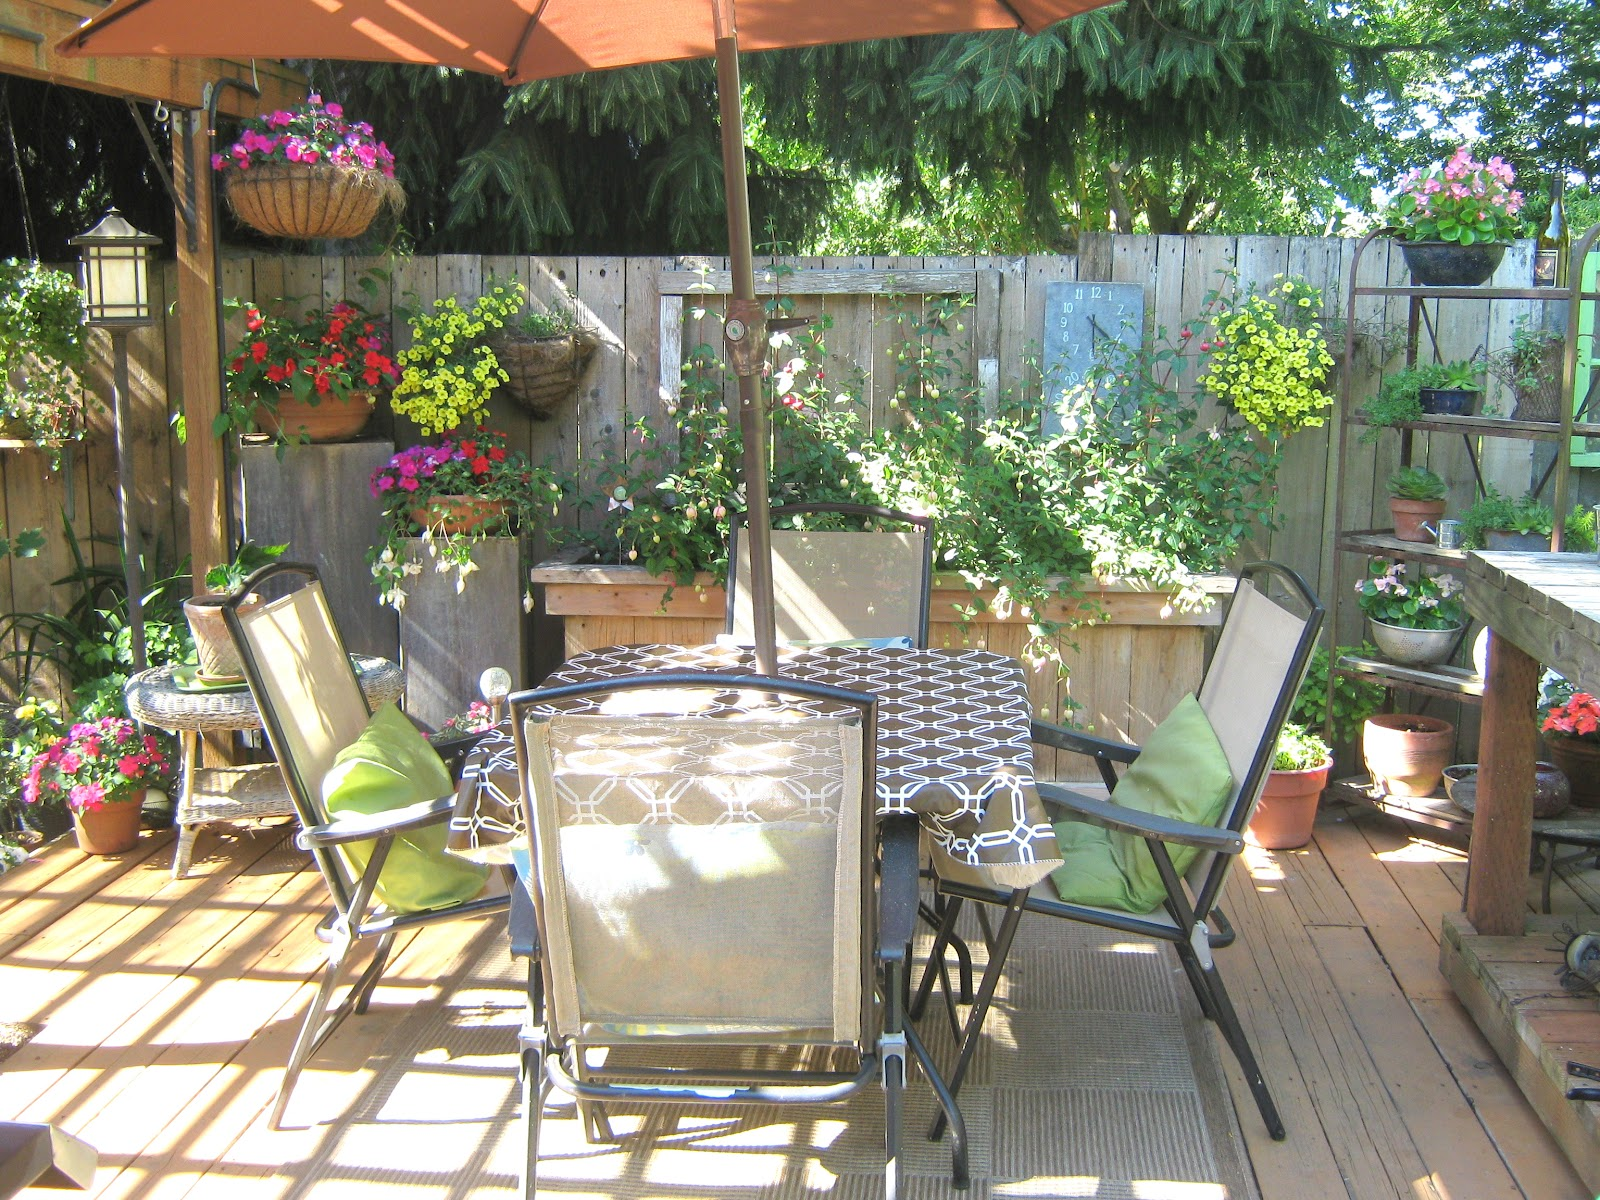 Rindy Mae: The Deck on Small Back Deck Decorating Ideas id=90284